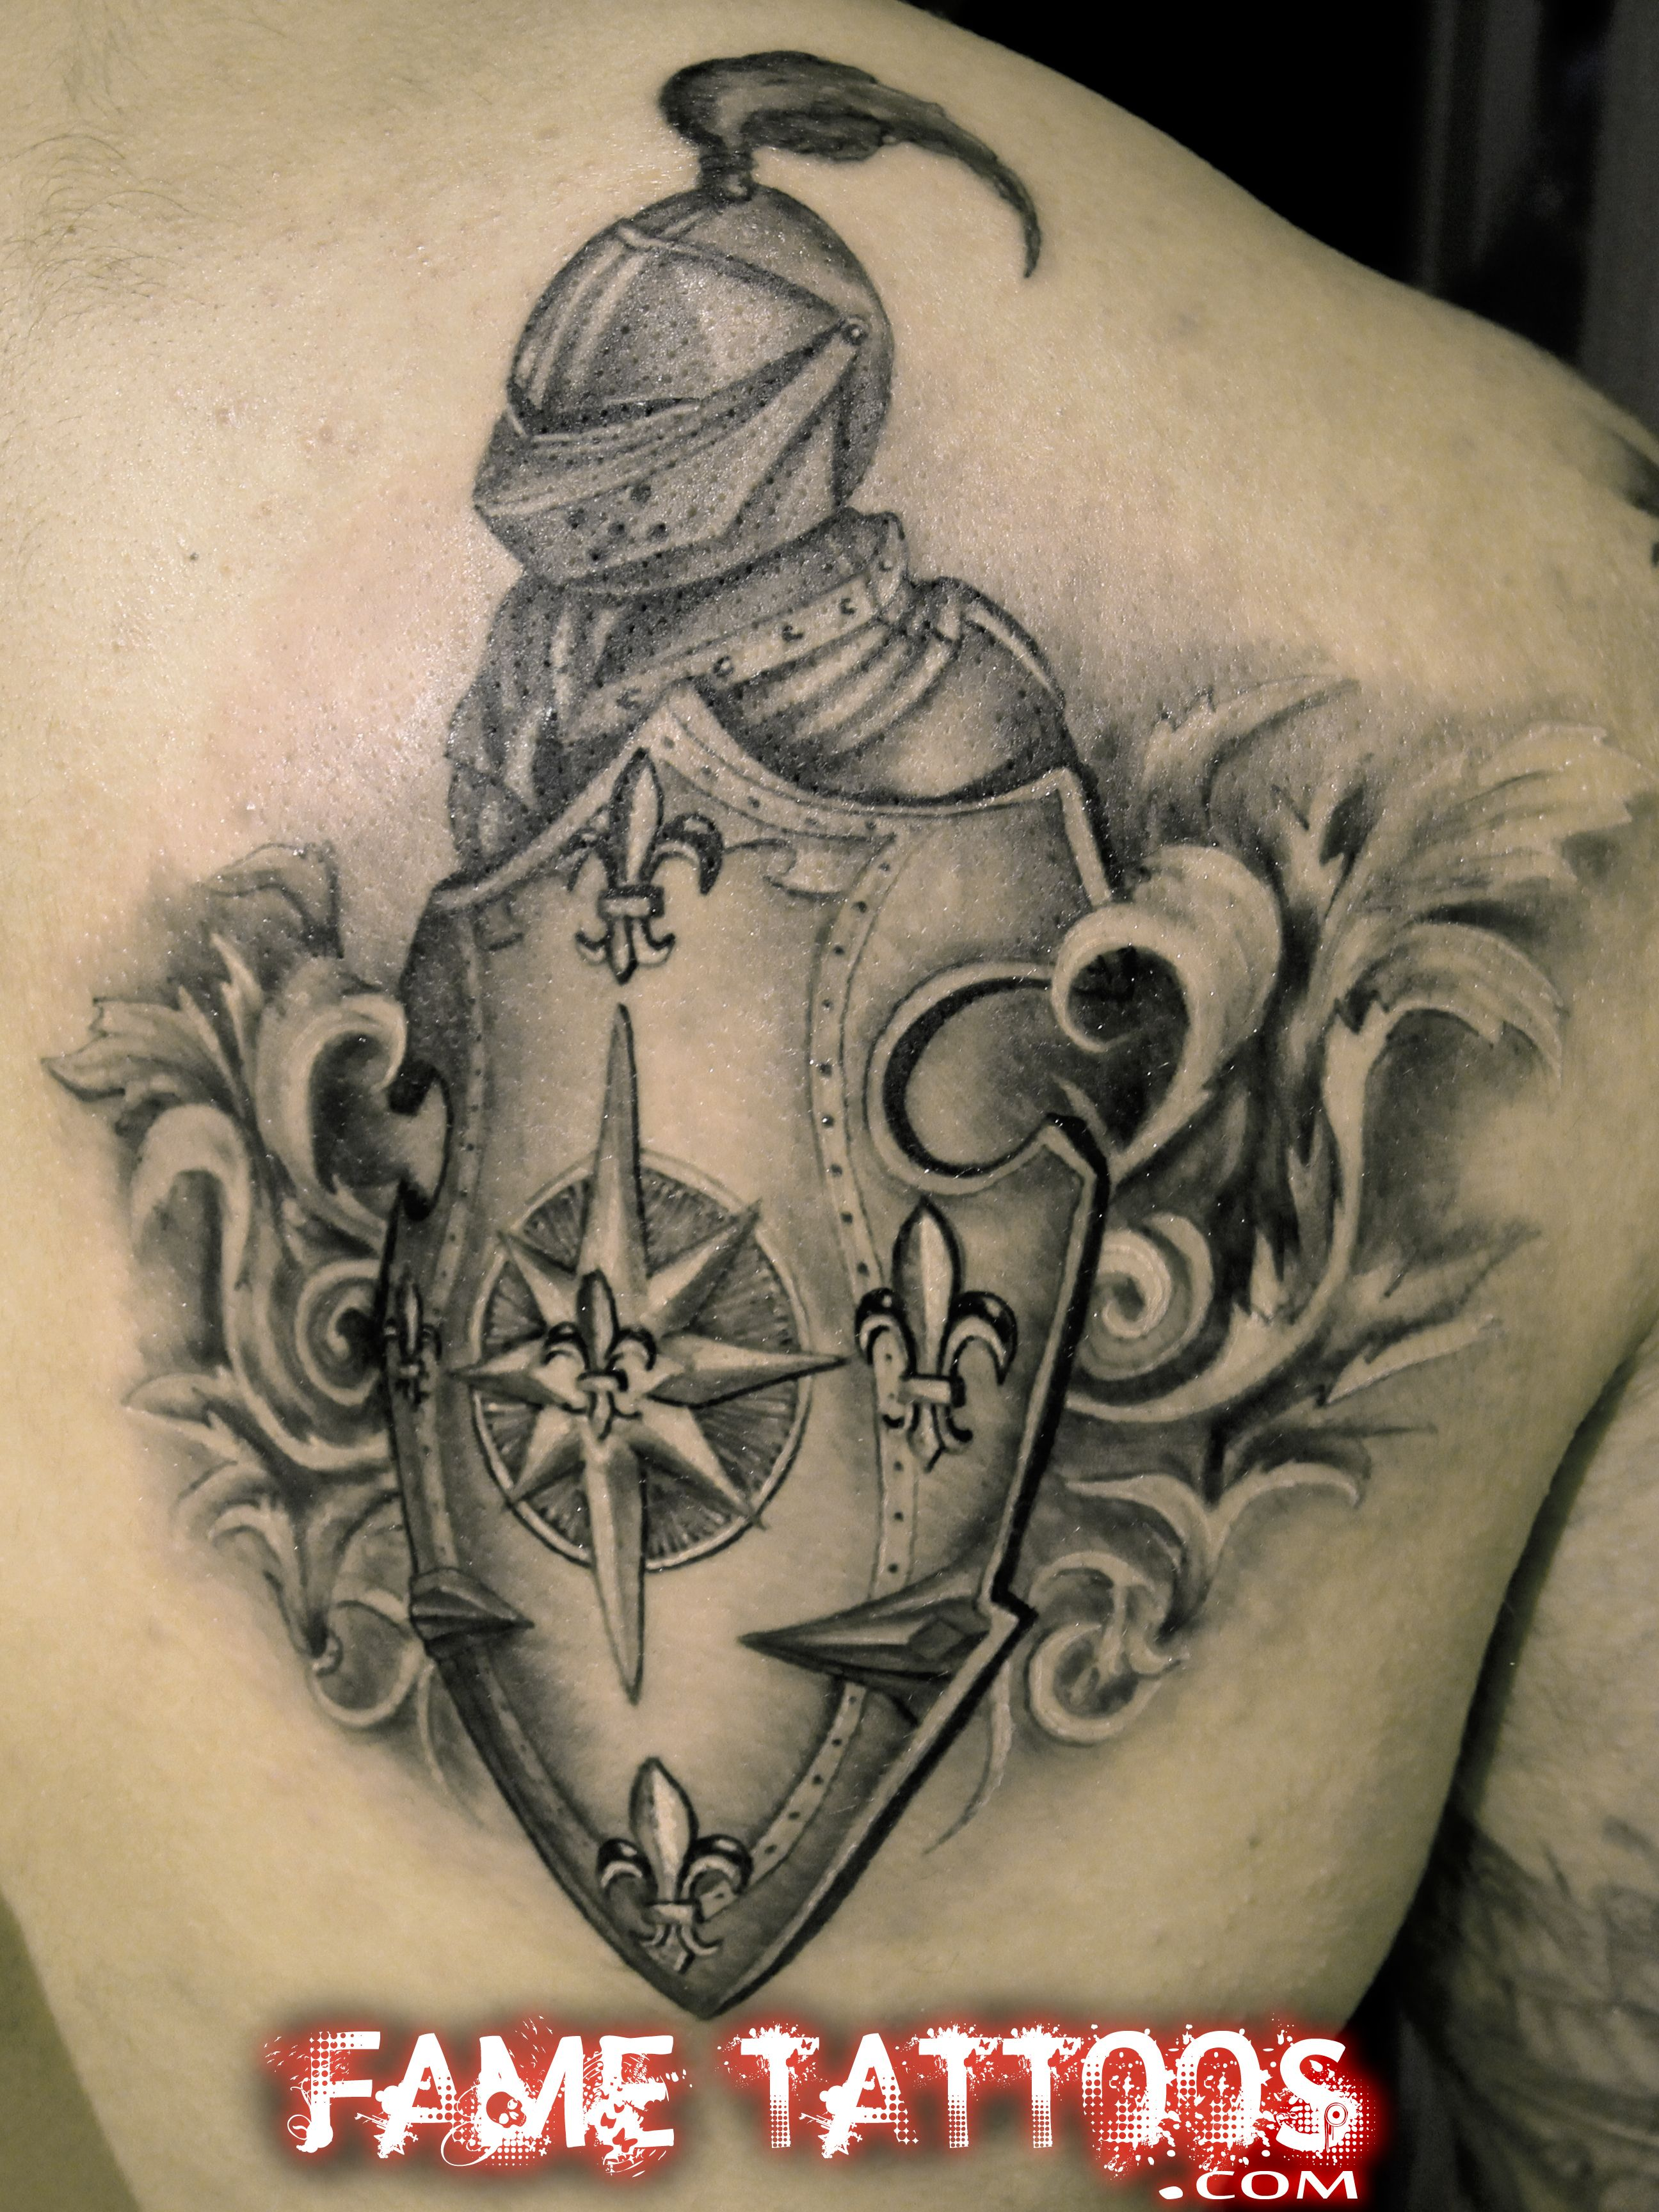 Küchenfliesen Tattoo Use The Form Below To Delete This Coat Of Arms Tattoo Designs The